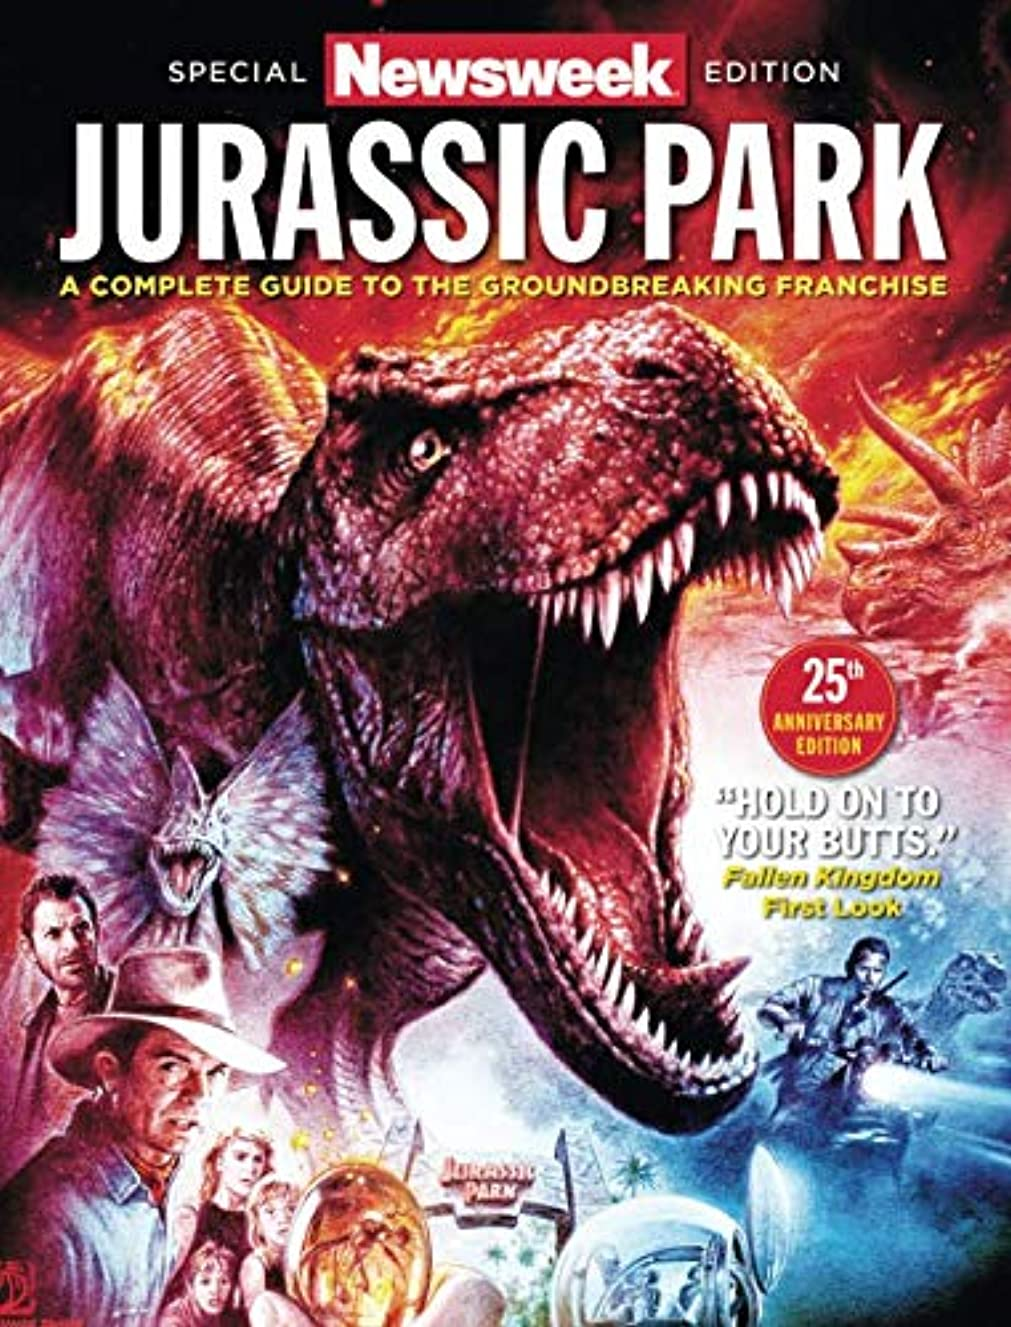 Newsweek Jurassic Park Special Edition: A Complete Guide To The Groundbreaking Franchise